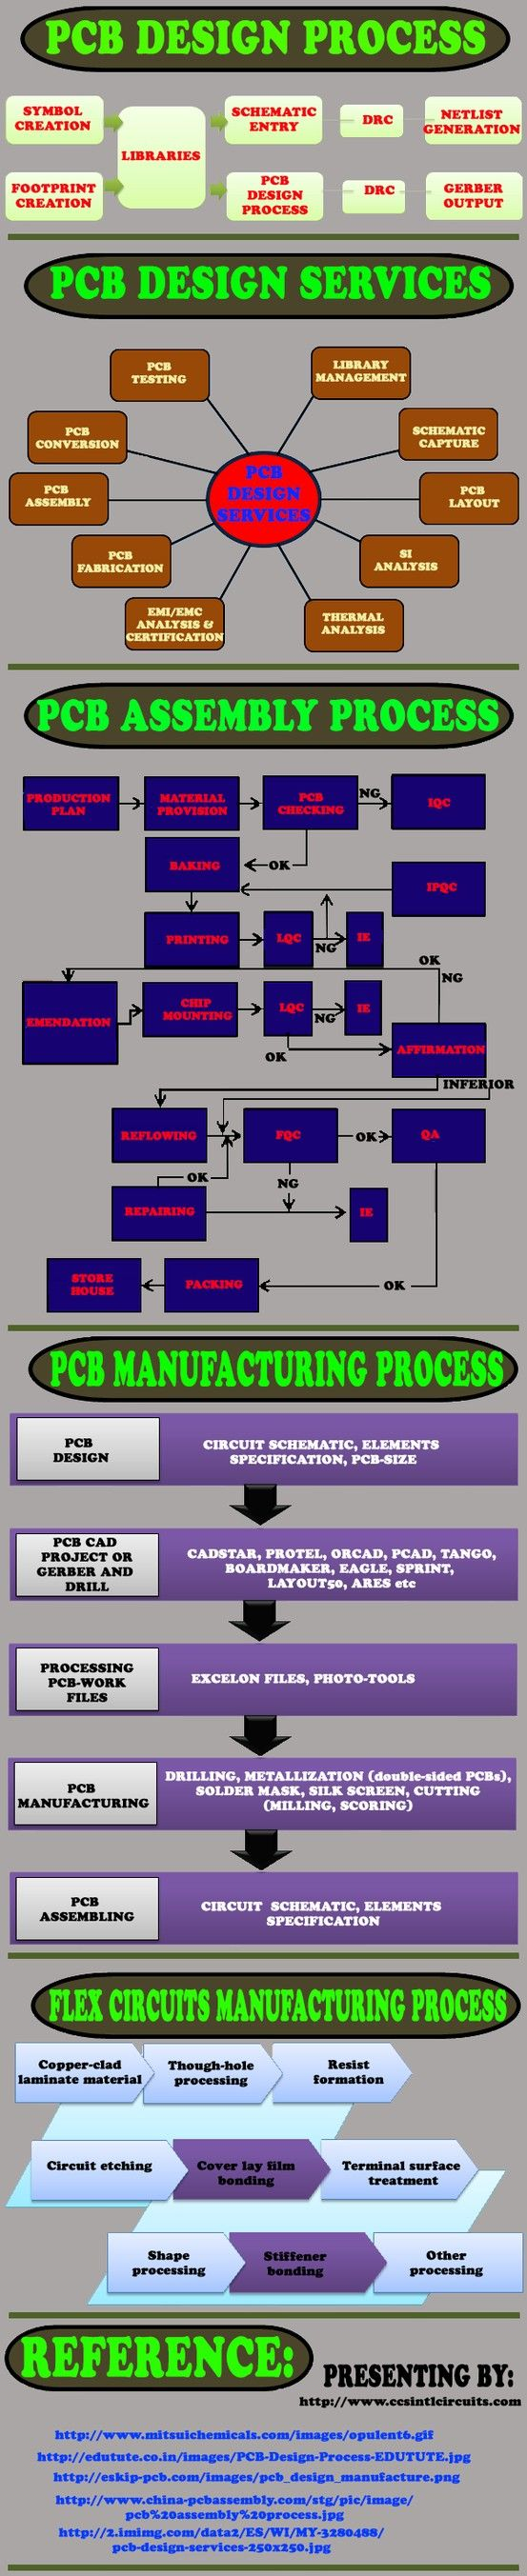 The given infographic enumerates about the different PCB prototypes manufactured by CCS International Circuits. They provide wide ranges of service in #PCB Prototypes to PCB production and throughout the PCB manufacturing process. CCS International Circuits has been in the business for over 60 years with combined experience in Offshore PCB Manufacturering. It strives to provide the best in quality, value, and service to the customers worldwide. http://www.ccsintlcircuits.com